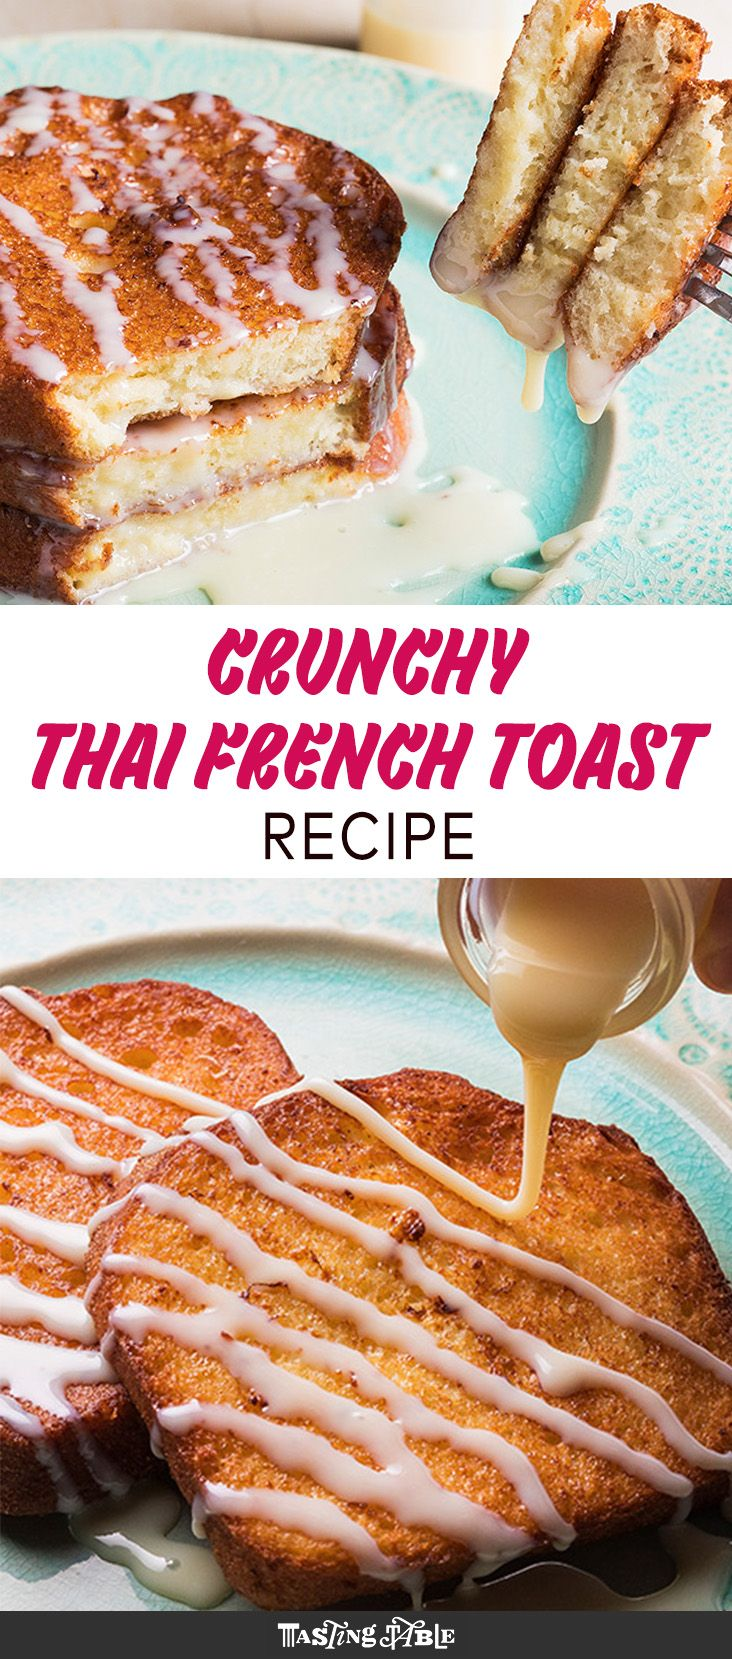 French toast fried to perfection